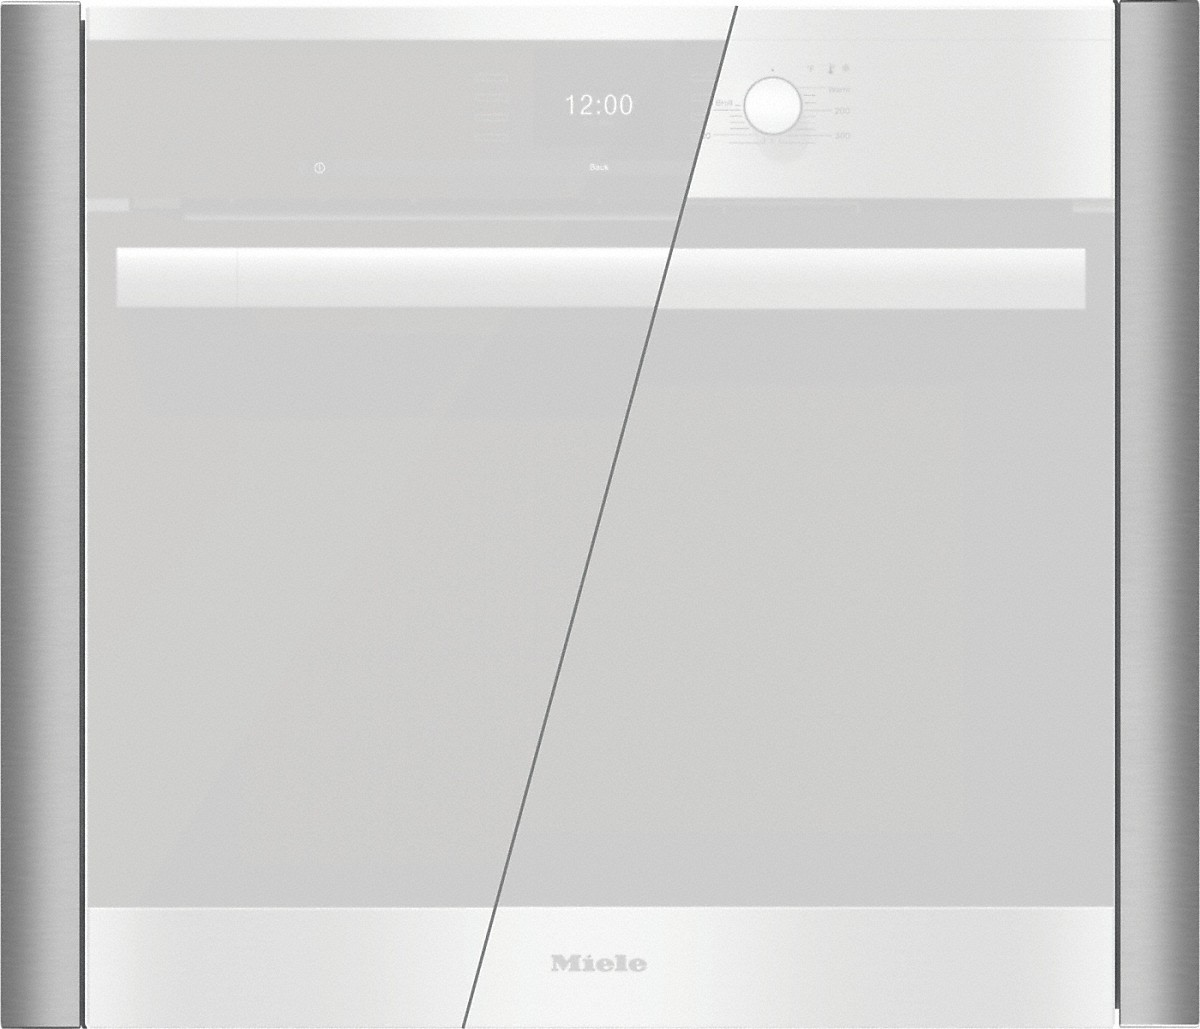 "Miele Trim kit for 27"" nichefor installation of a convection oven/combi-steam oven 24"" width x 24"" height"